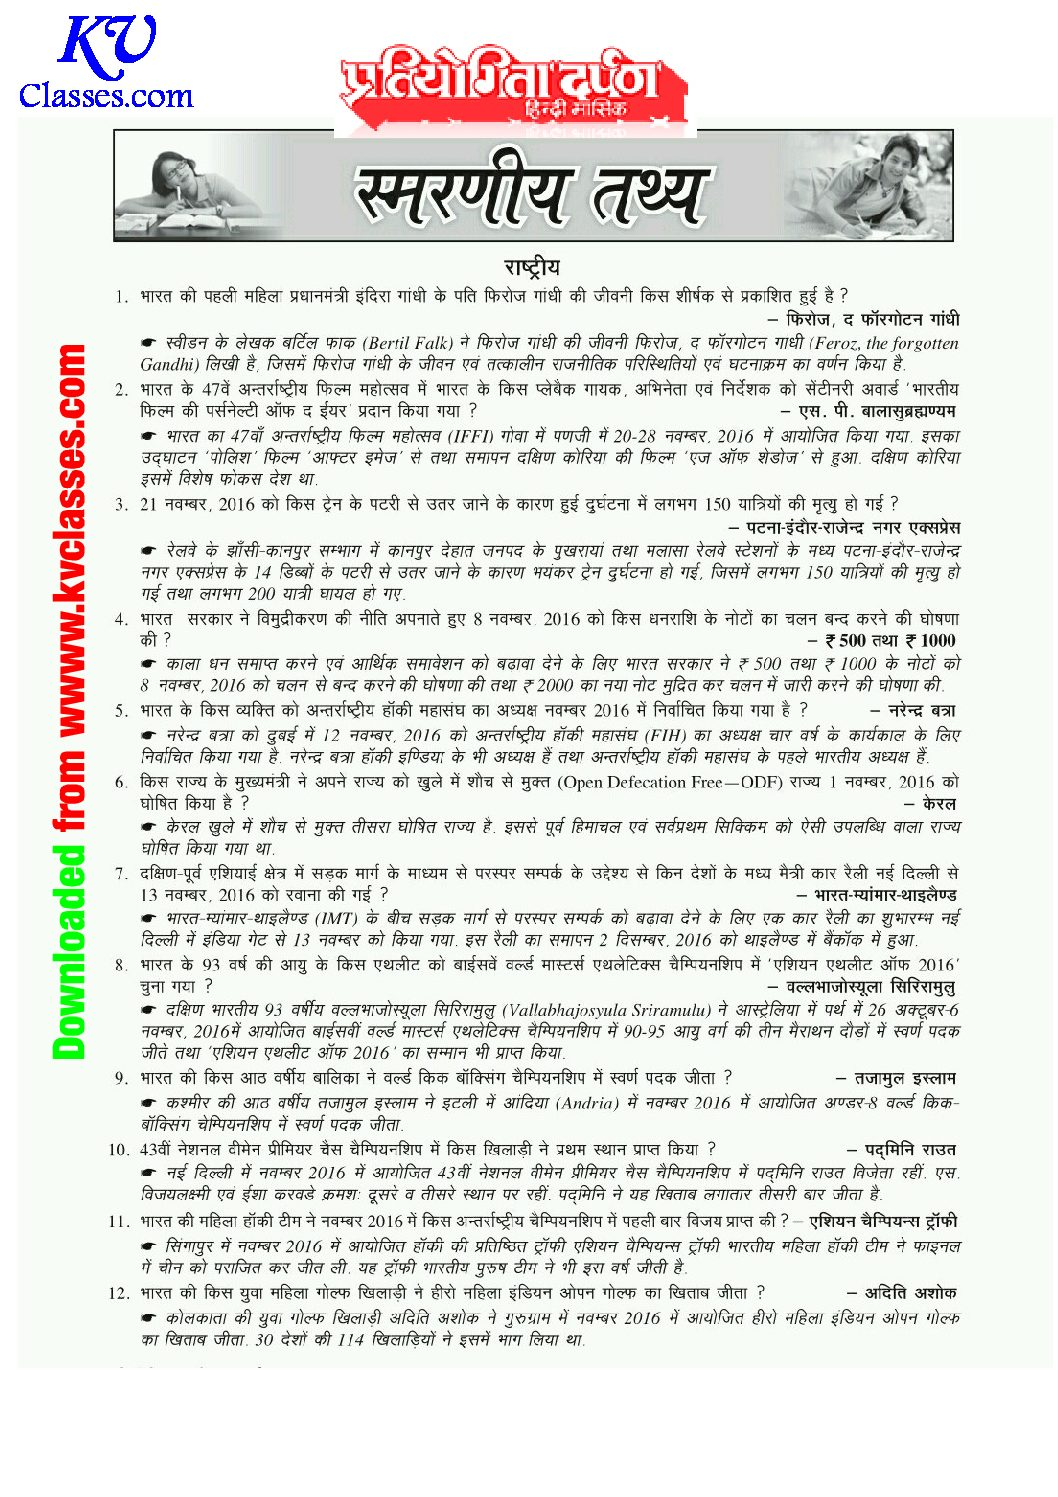 CURRENT AFFAIRS JAN 2017- AUG 2017 PDF DOWNLOAD  PRATIYOGITA DARPAN [ ENGLISH + HINDI ]